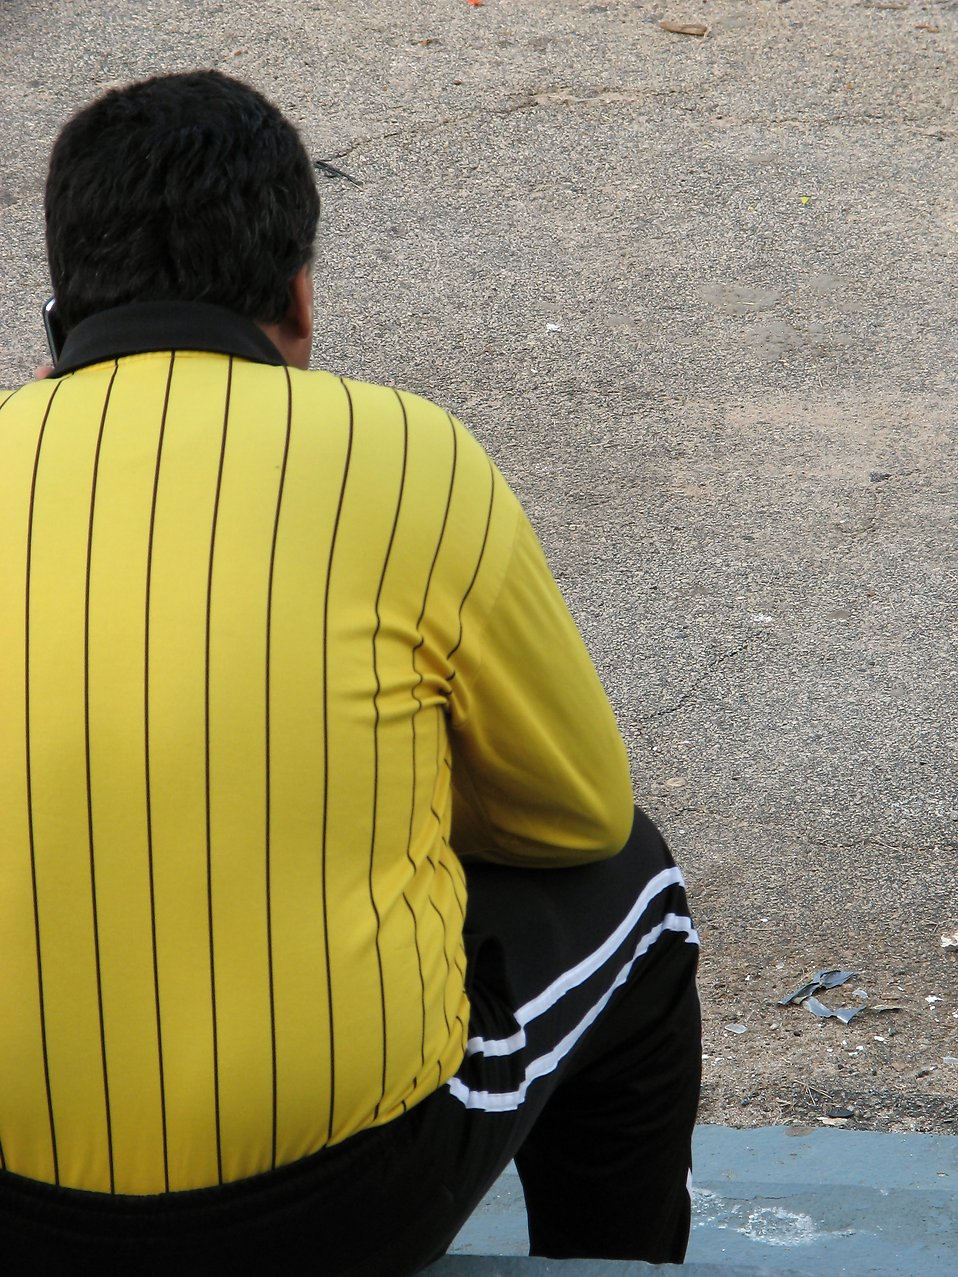 Soccer referee : Free Stock Photo